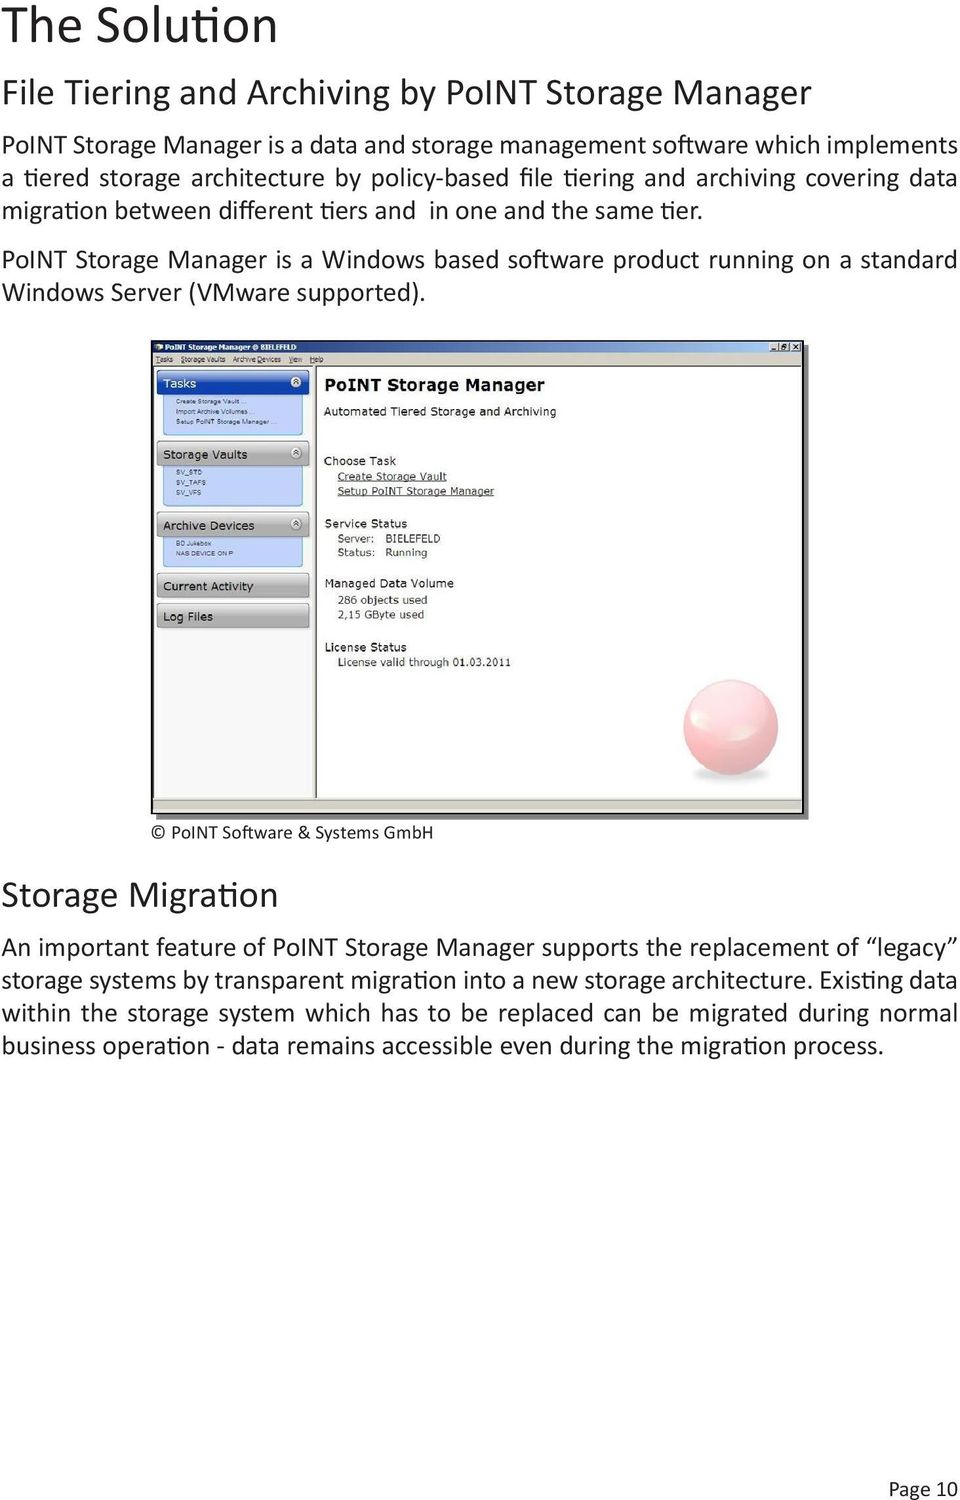 PoINT Storage Manager is a Windows based software product running on a standard Windows Server (VMware supported).